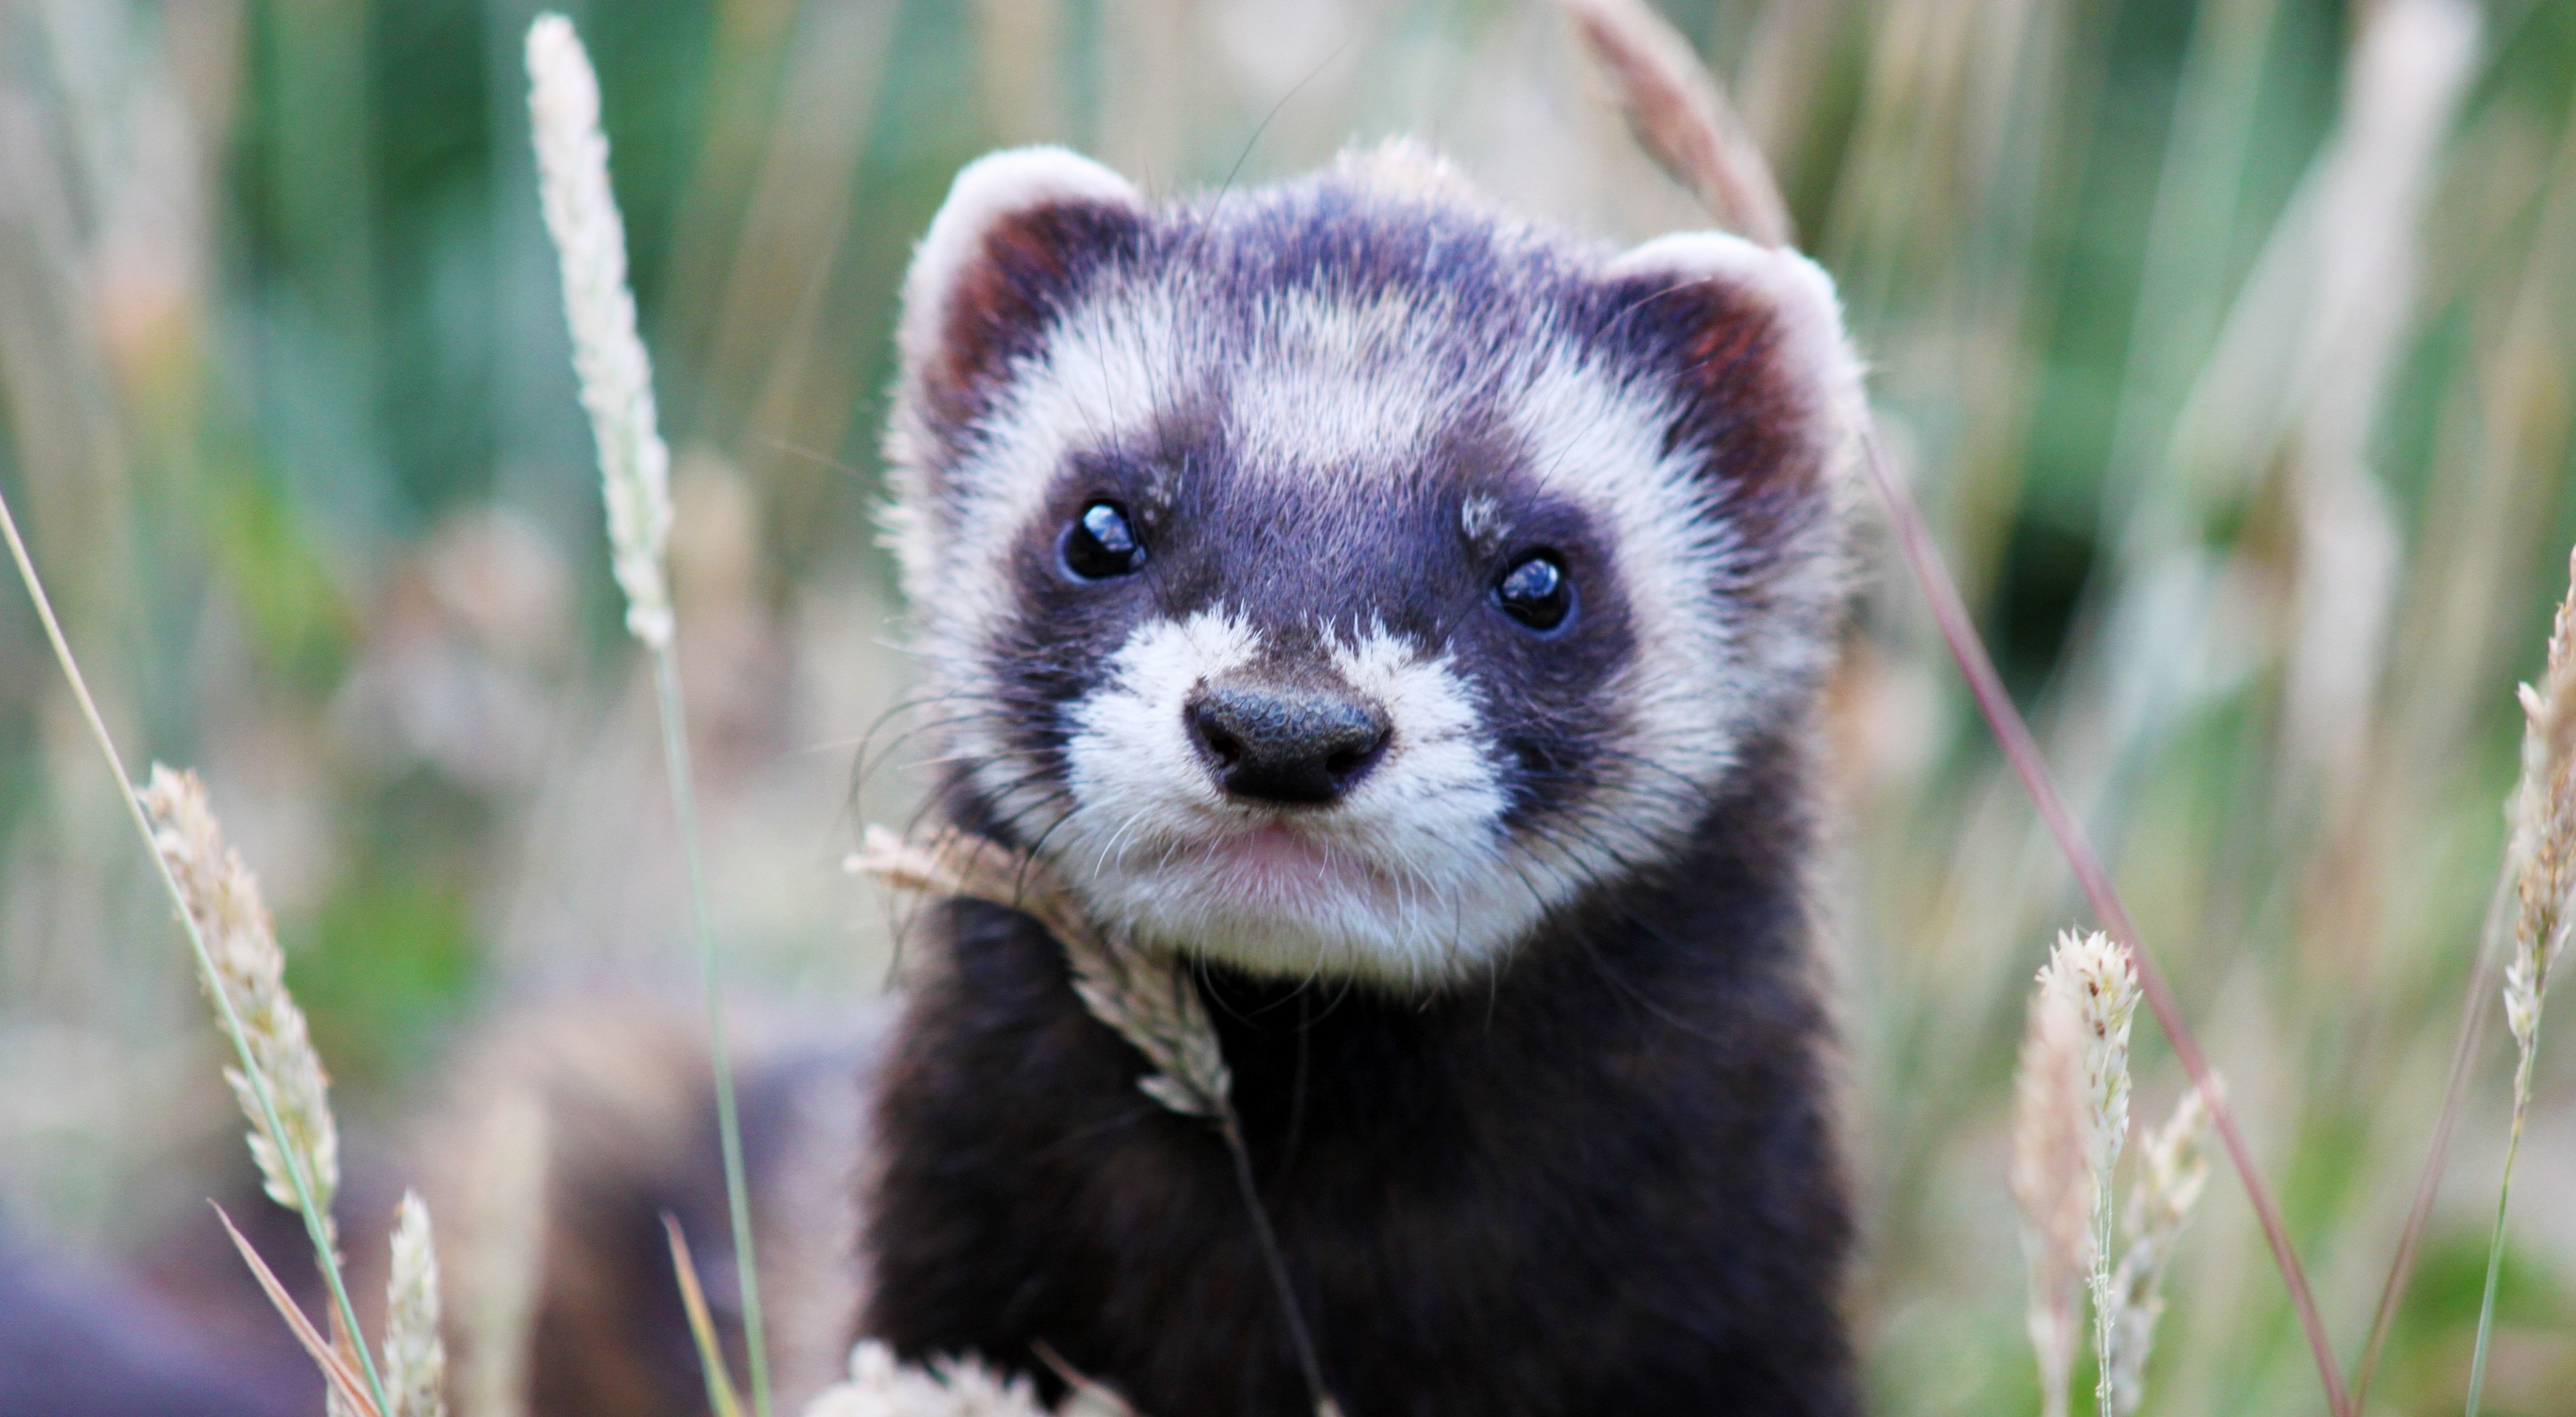 153404 download wallpaper Animals, Ferret, Polecat, Grass, Muzzle, Peek Out, Look Out screensavers and pictures for free